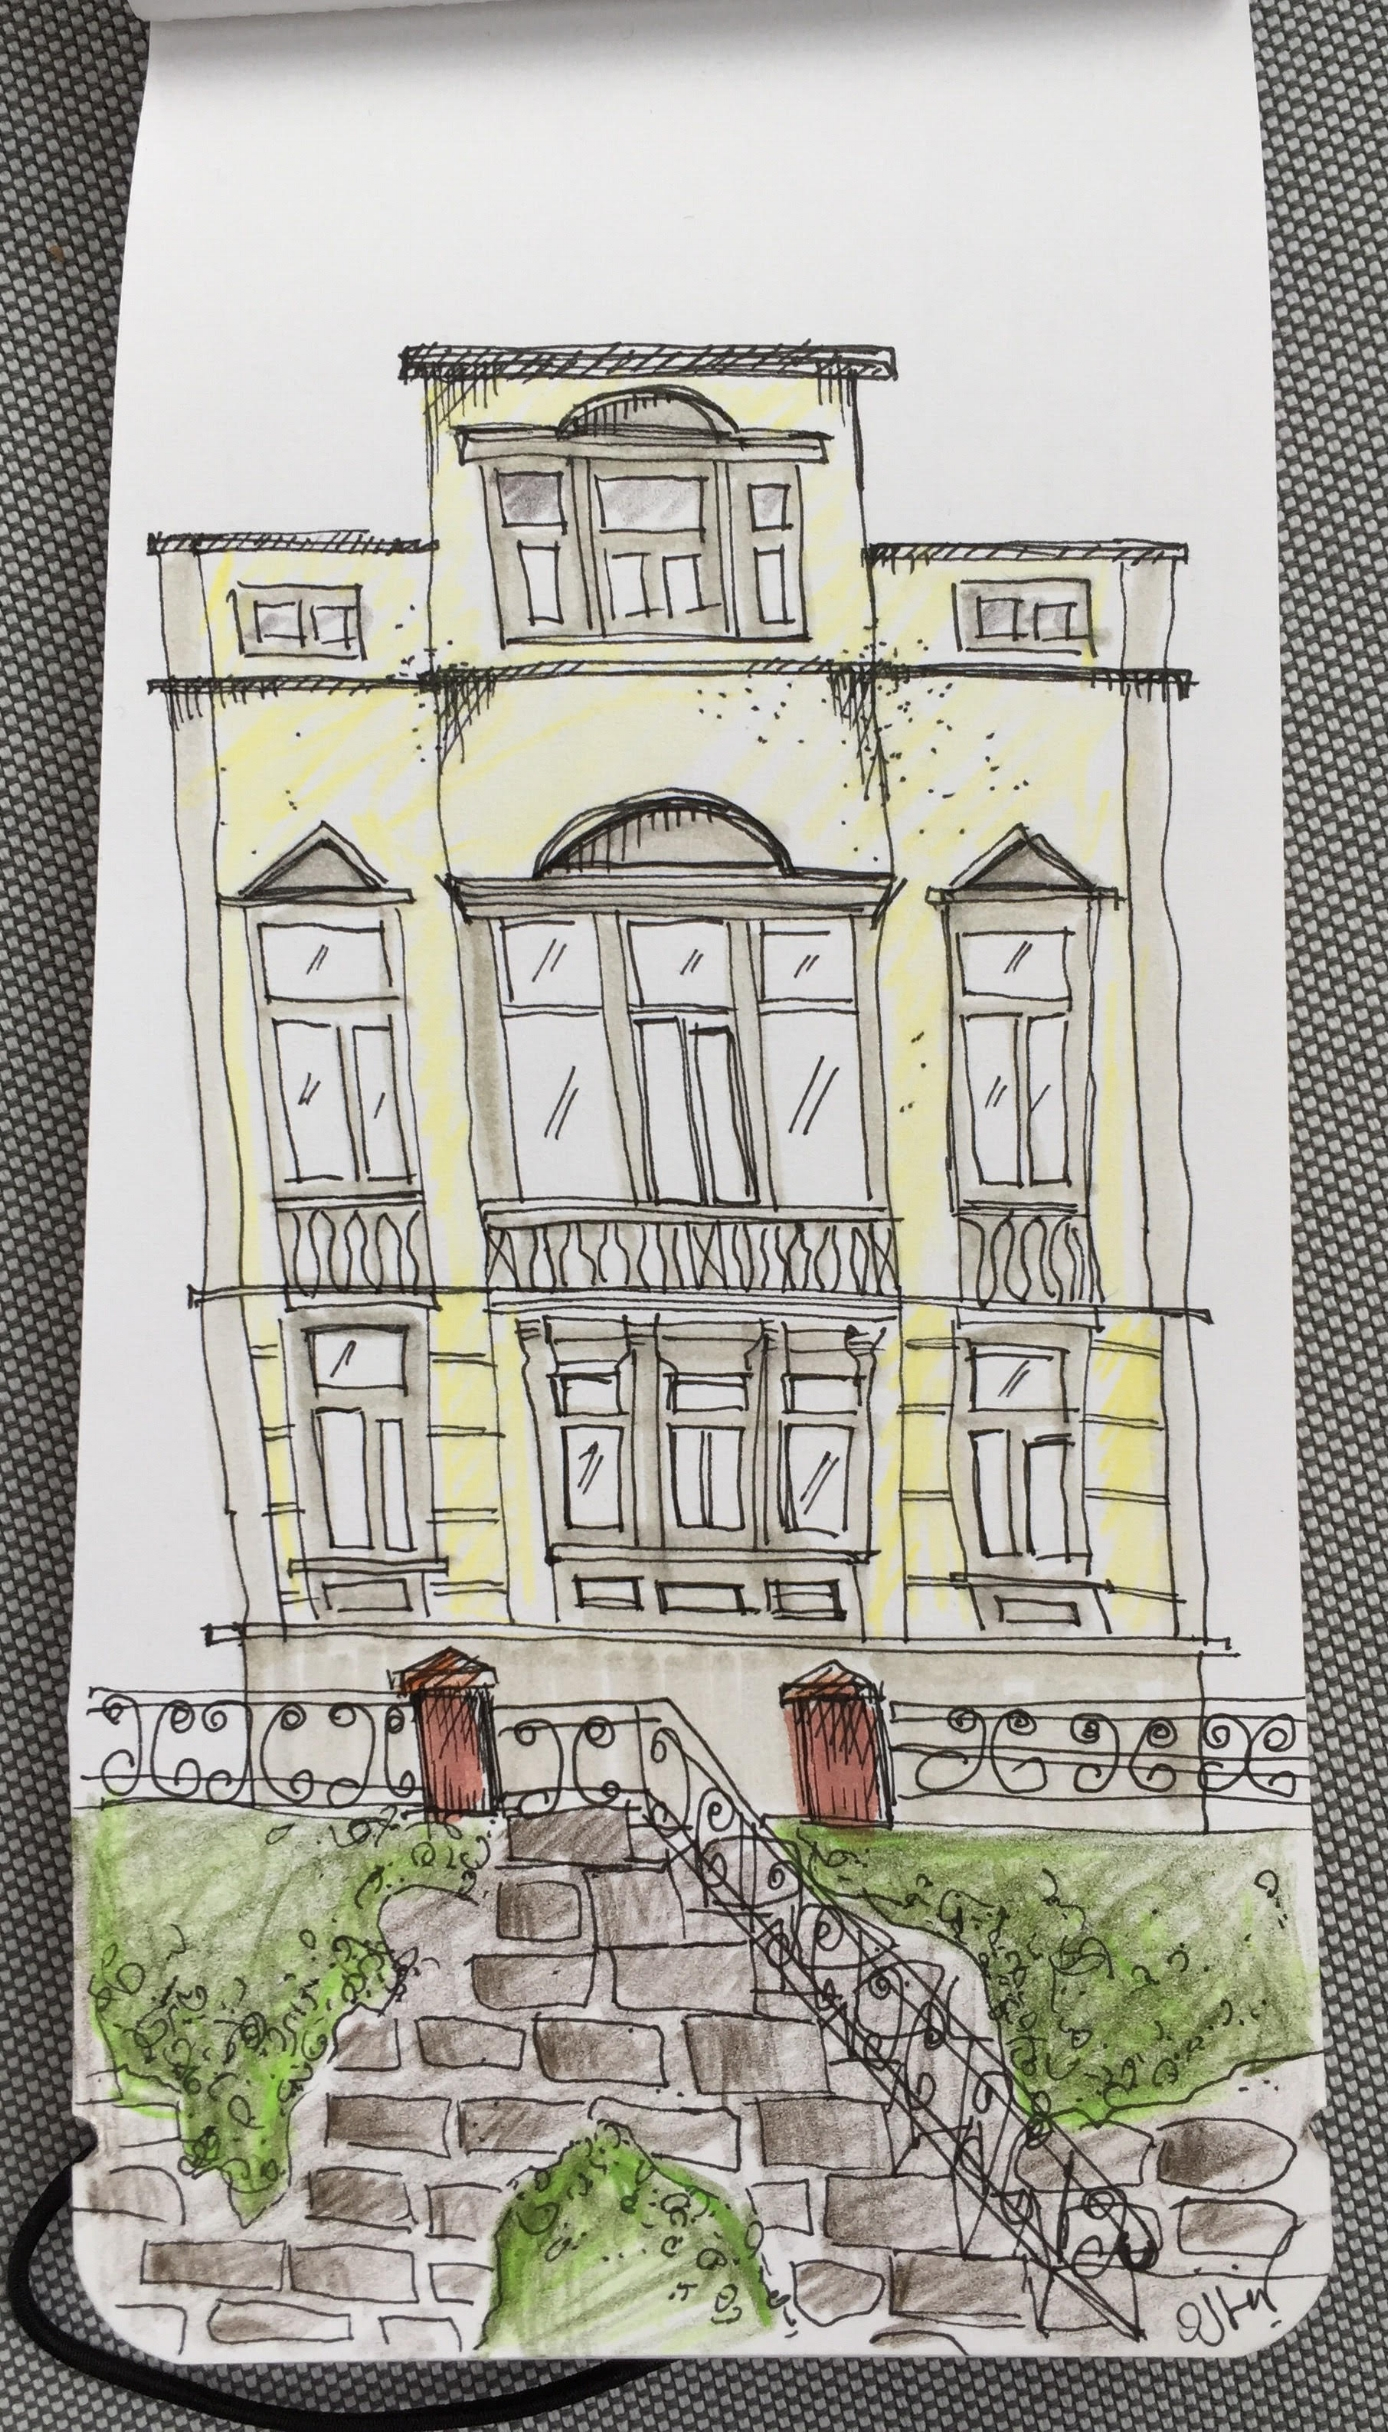 . . . sketched from an image after a coffee break in Giessen, Germany . . .